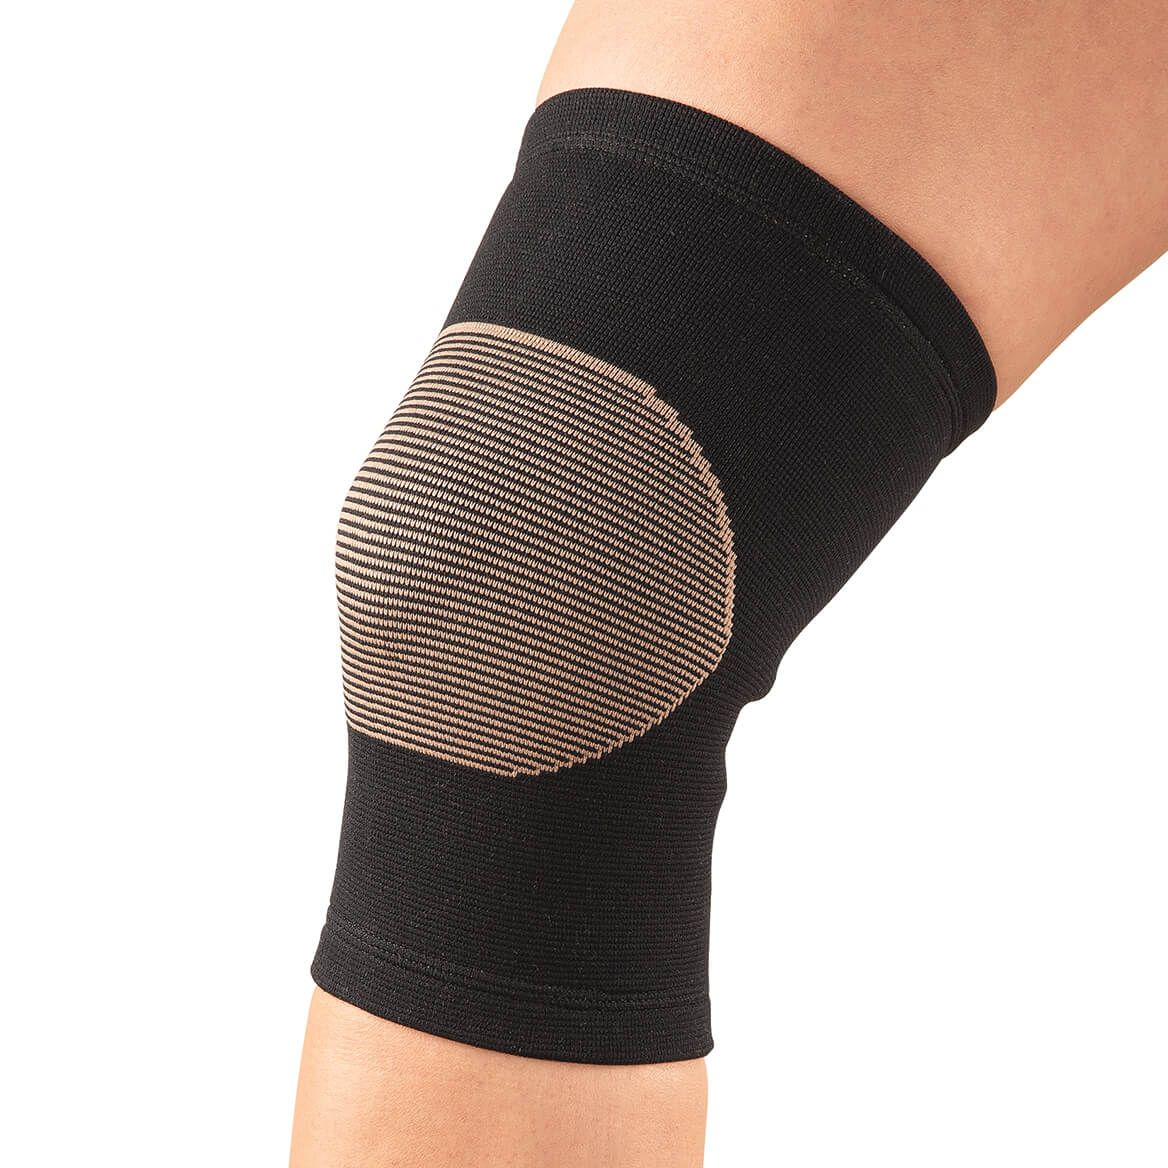 Copper Therapy Knee Support-363686